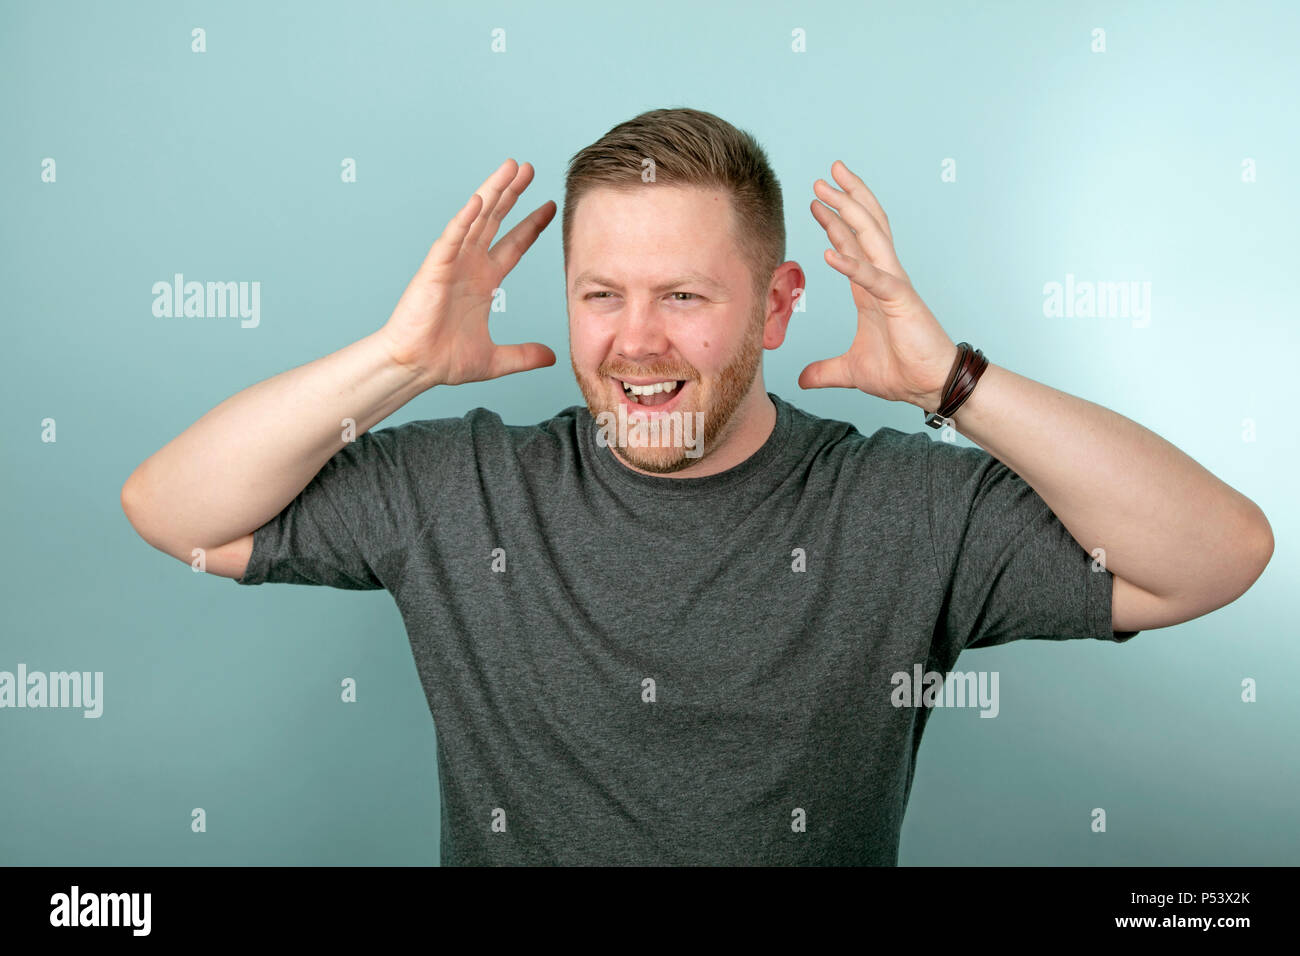 Frustrated angry man snarling and gesturing with his hands either side of his head over a grey background - Stock Image